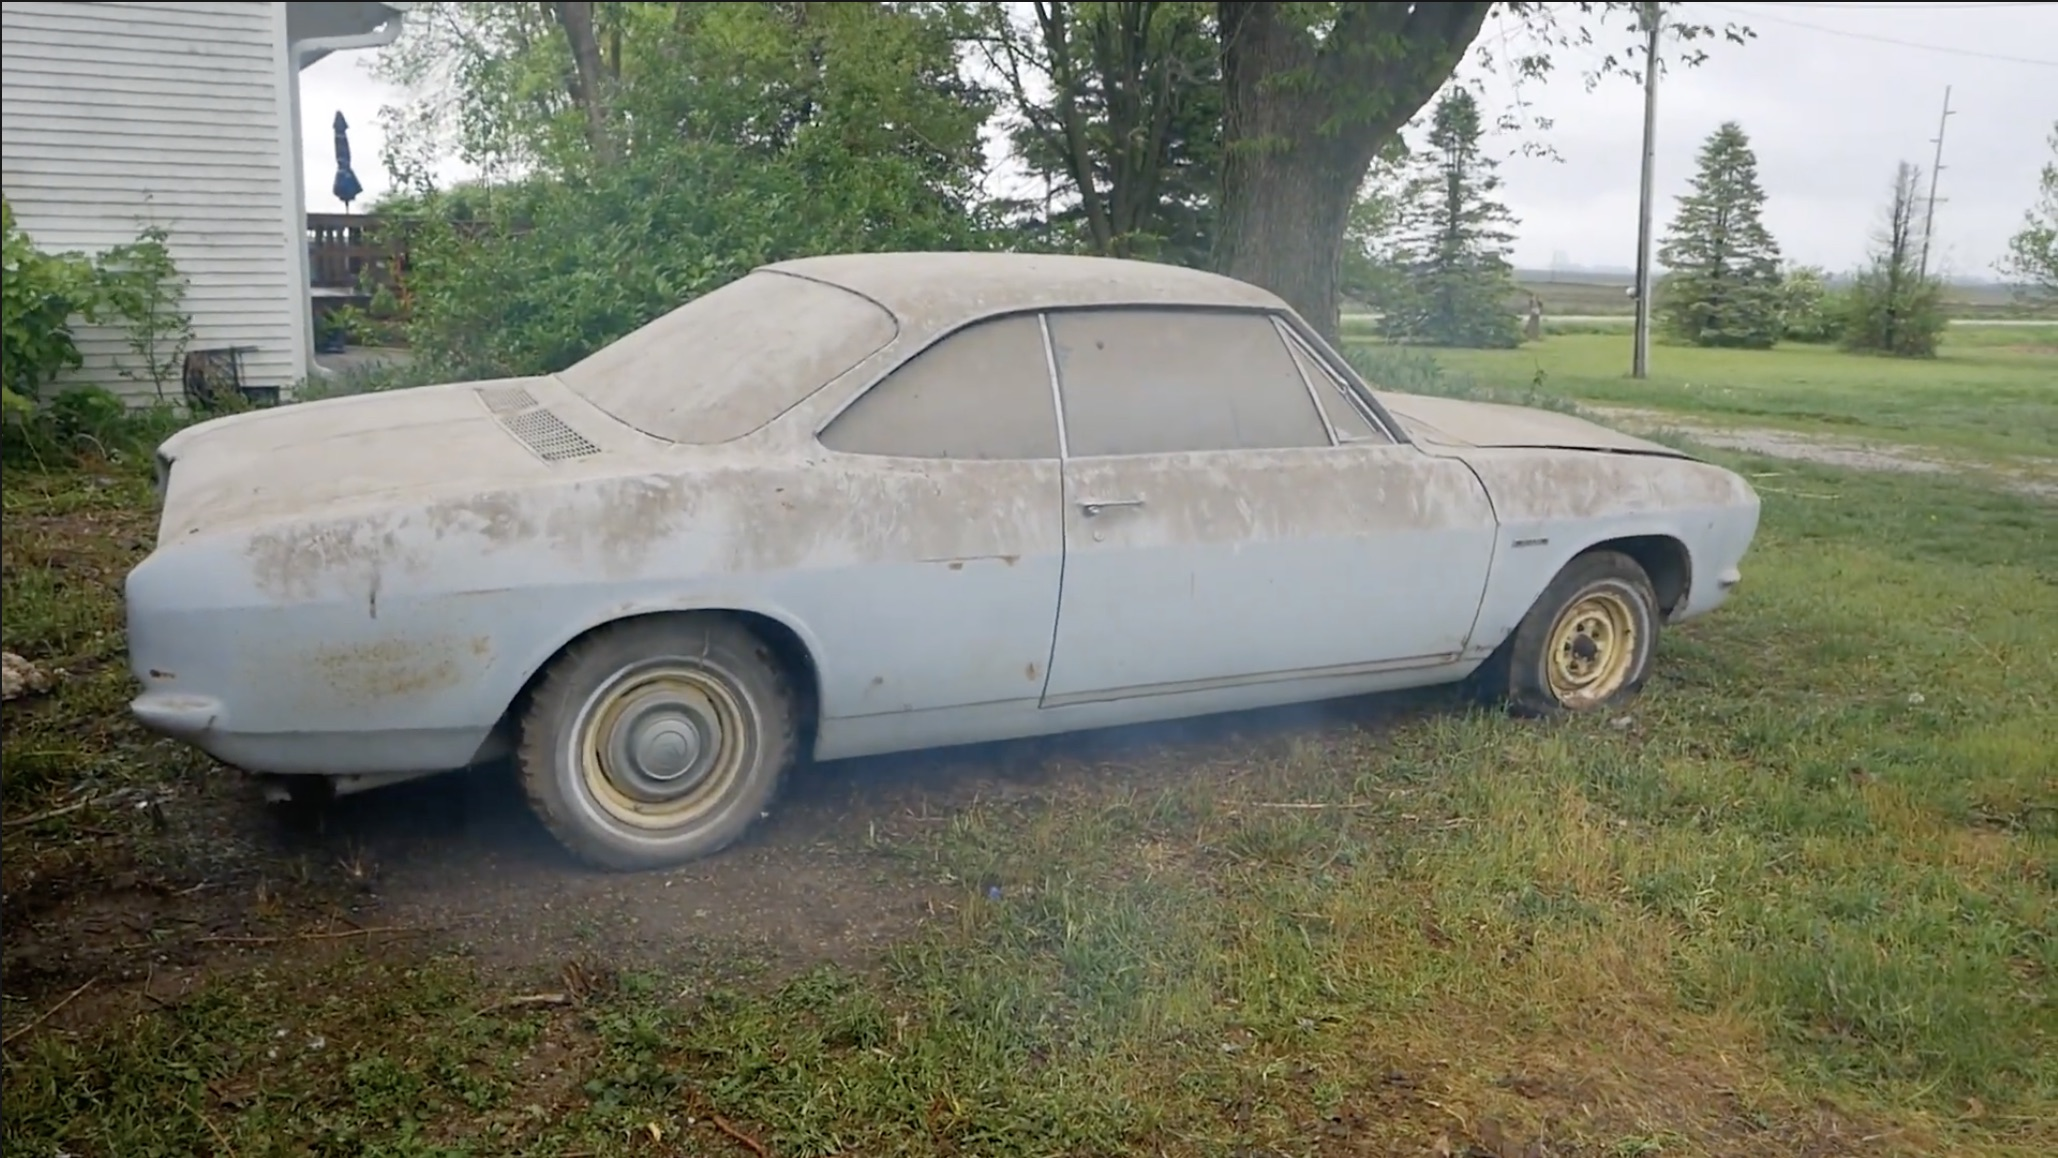 Eat This, Nader: Waking Up A Dusty Corvair And Bringing It Out Into The Light